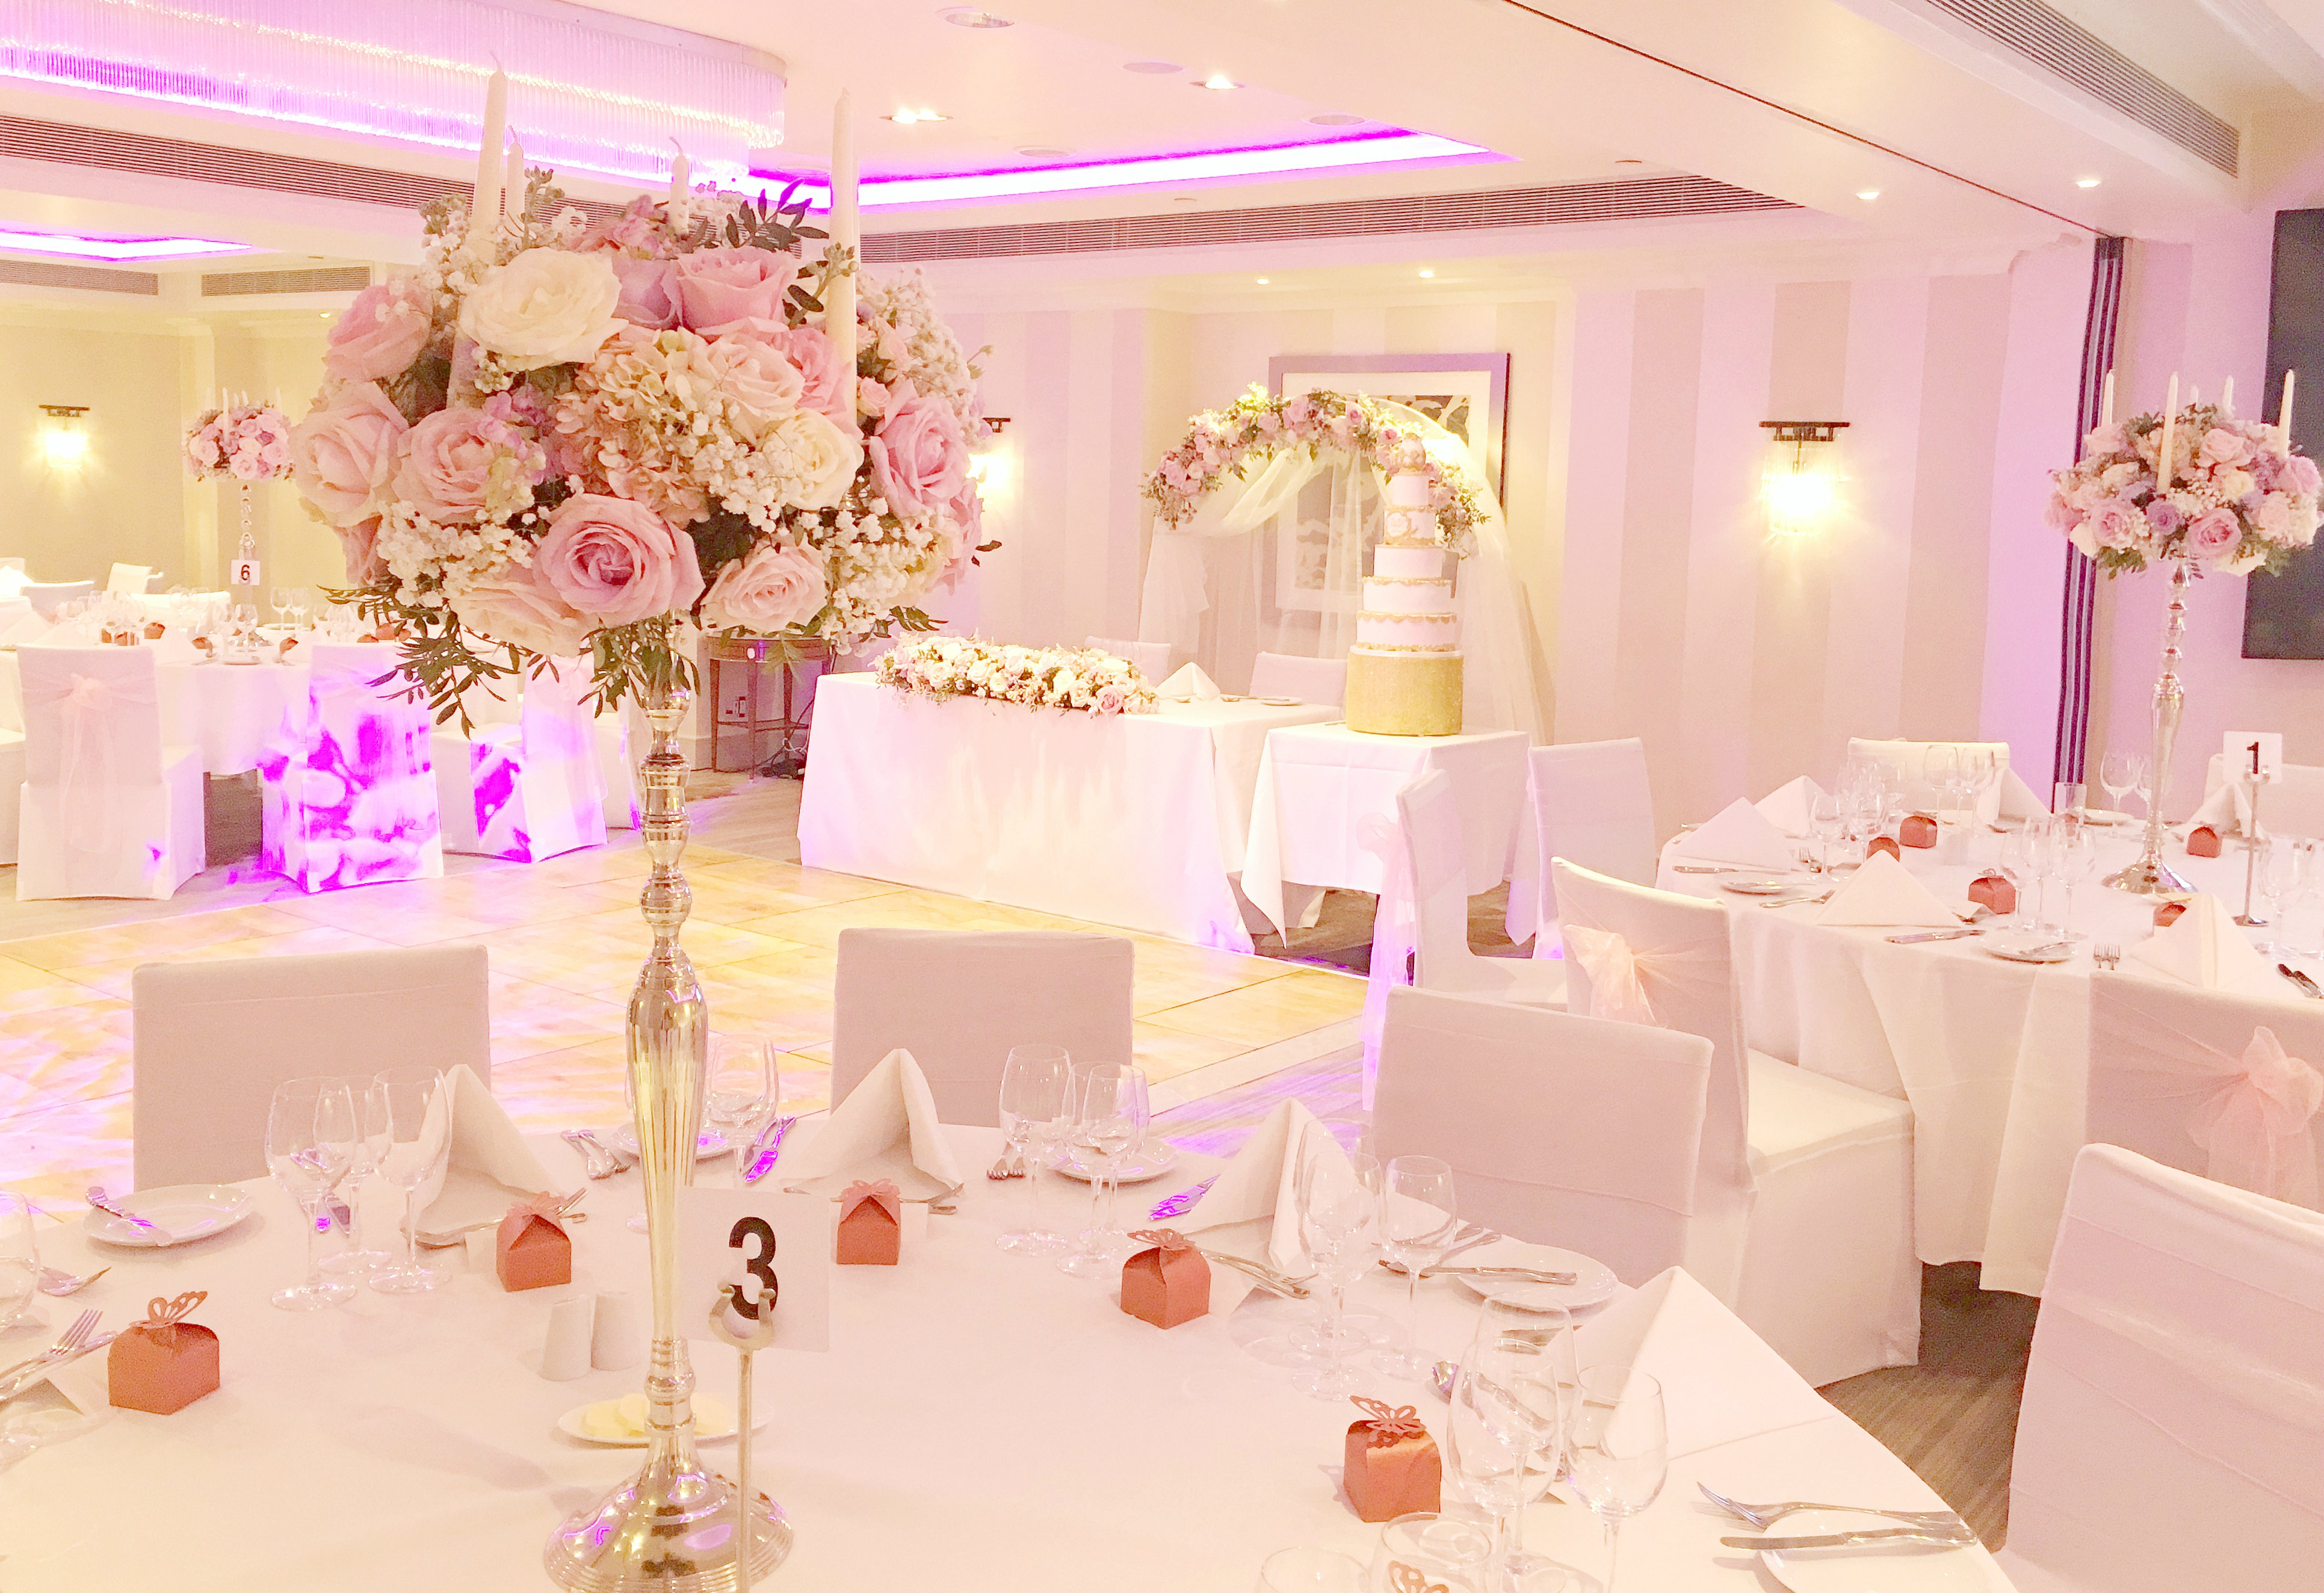 Pink and lilac tall candelabra wedding centrepieces with roses flowers Cherie Kelly London Sofitel St James